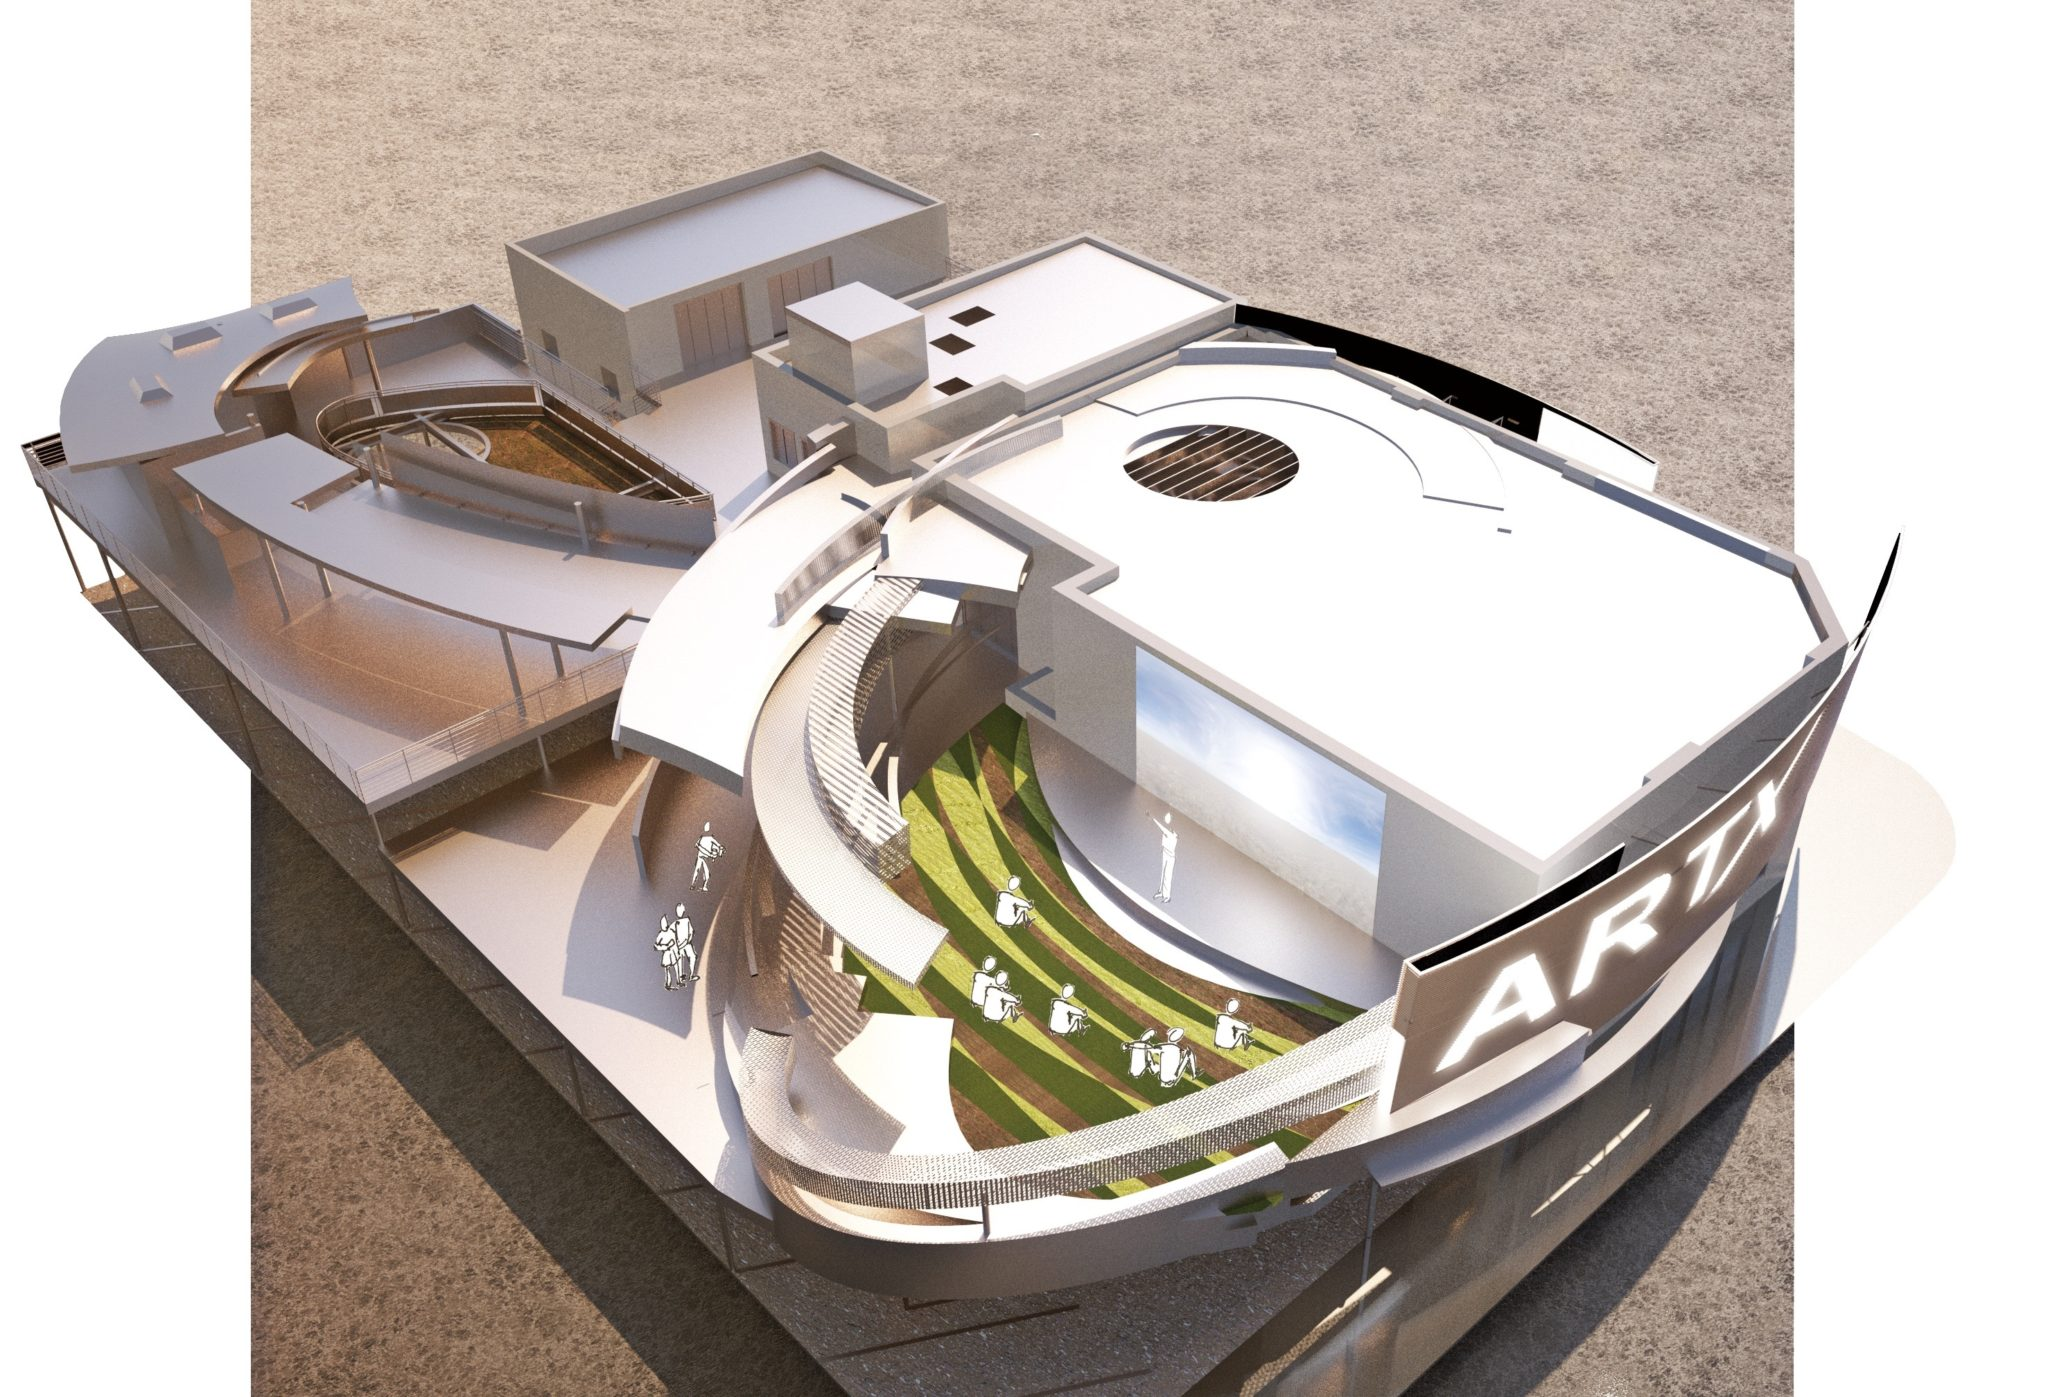 3D Exterior model - Visualization Art X Gallery and Workshops Ultra Unit Architectural Studio